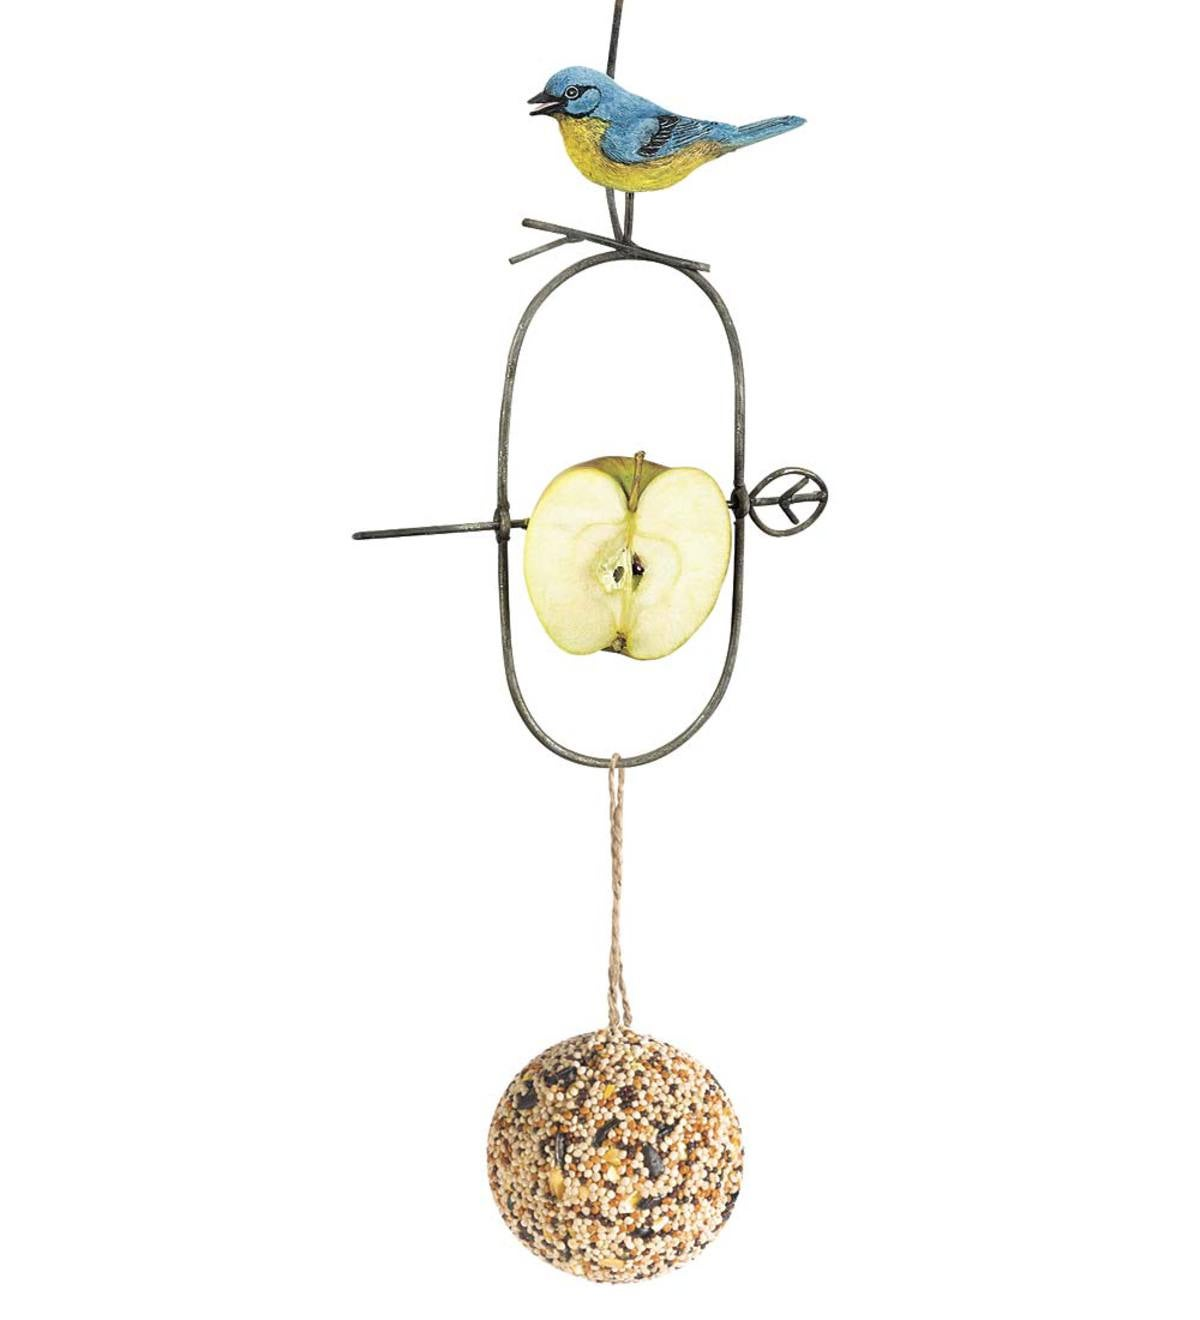 Bird Motif Fruit Spear Feeder with Seed Ball